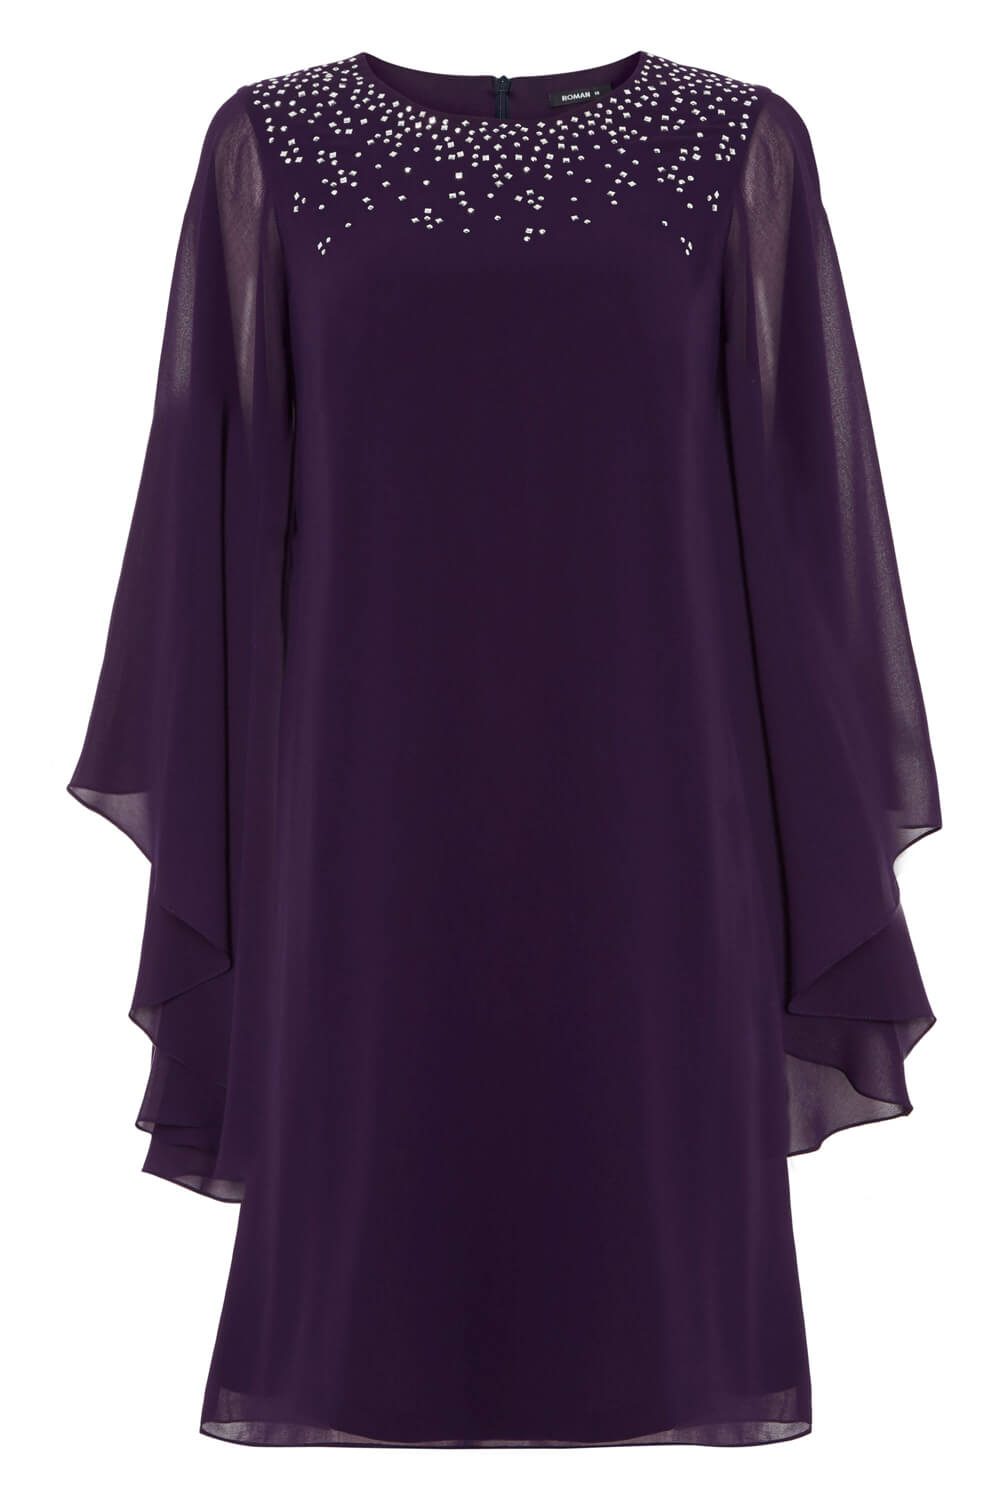 Roman-Originals-Ladies-Embellished-Chiffon-Cape-Dress-Purple thumbnail 10